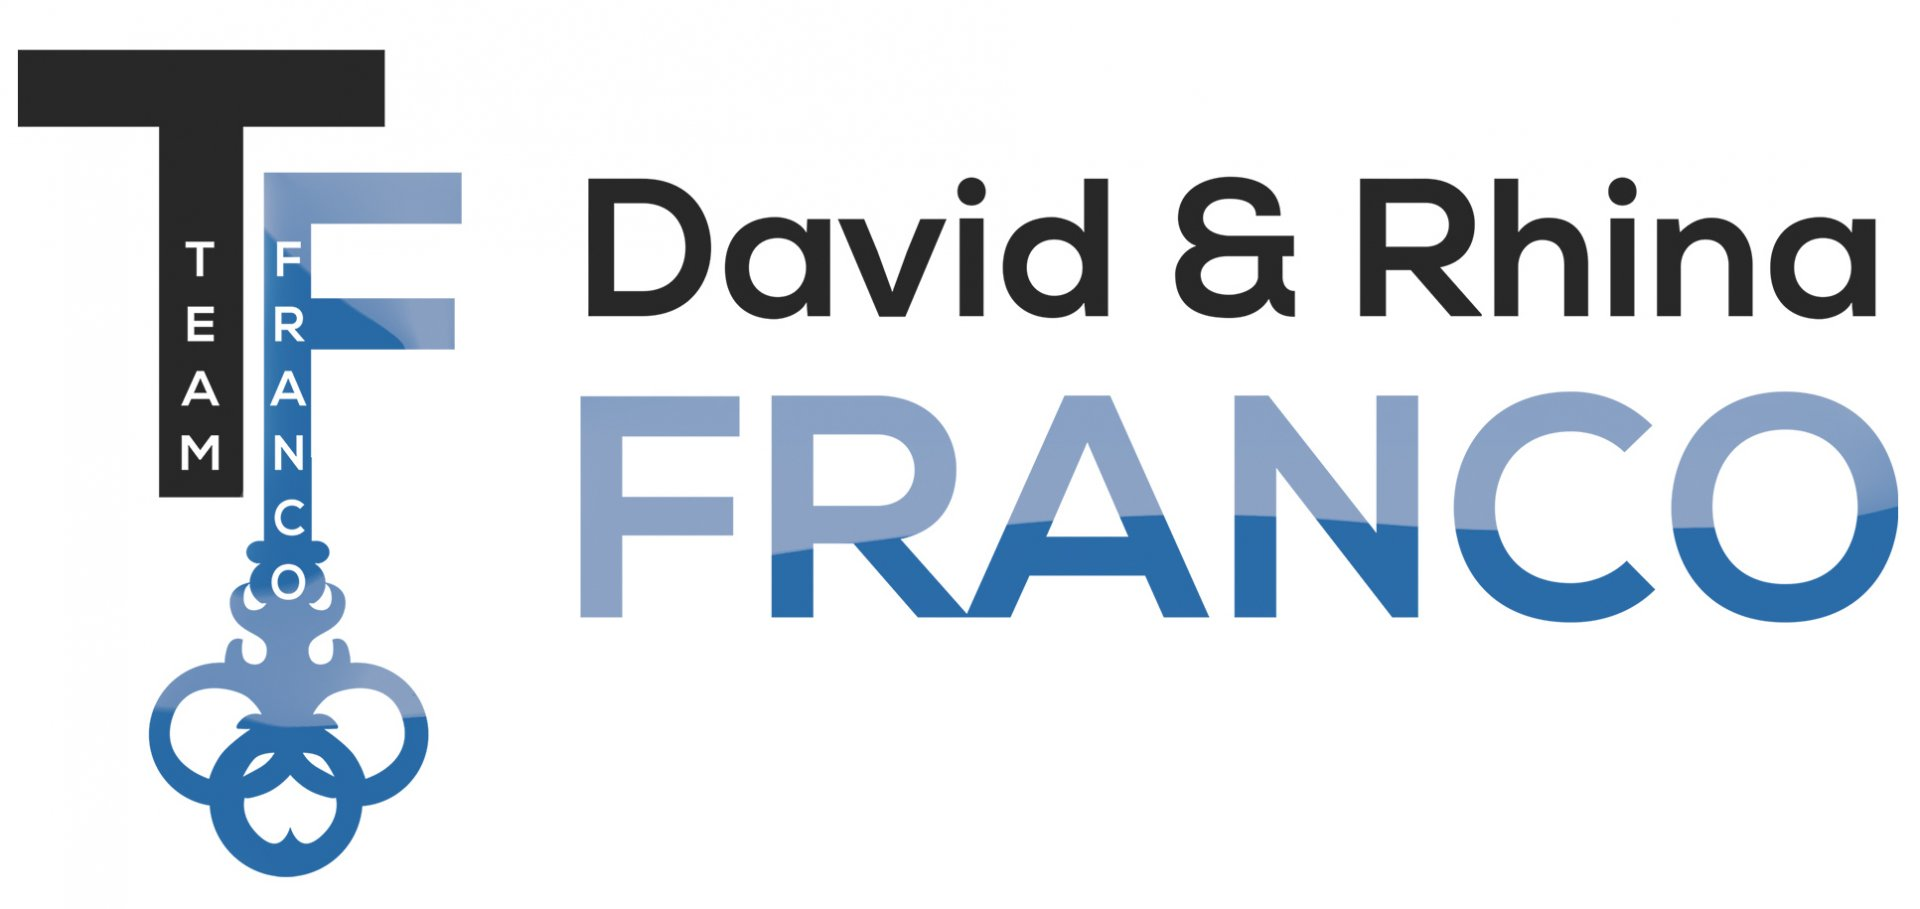 David & Rhina Sell Homes logo